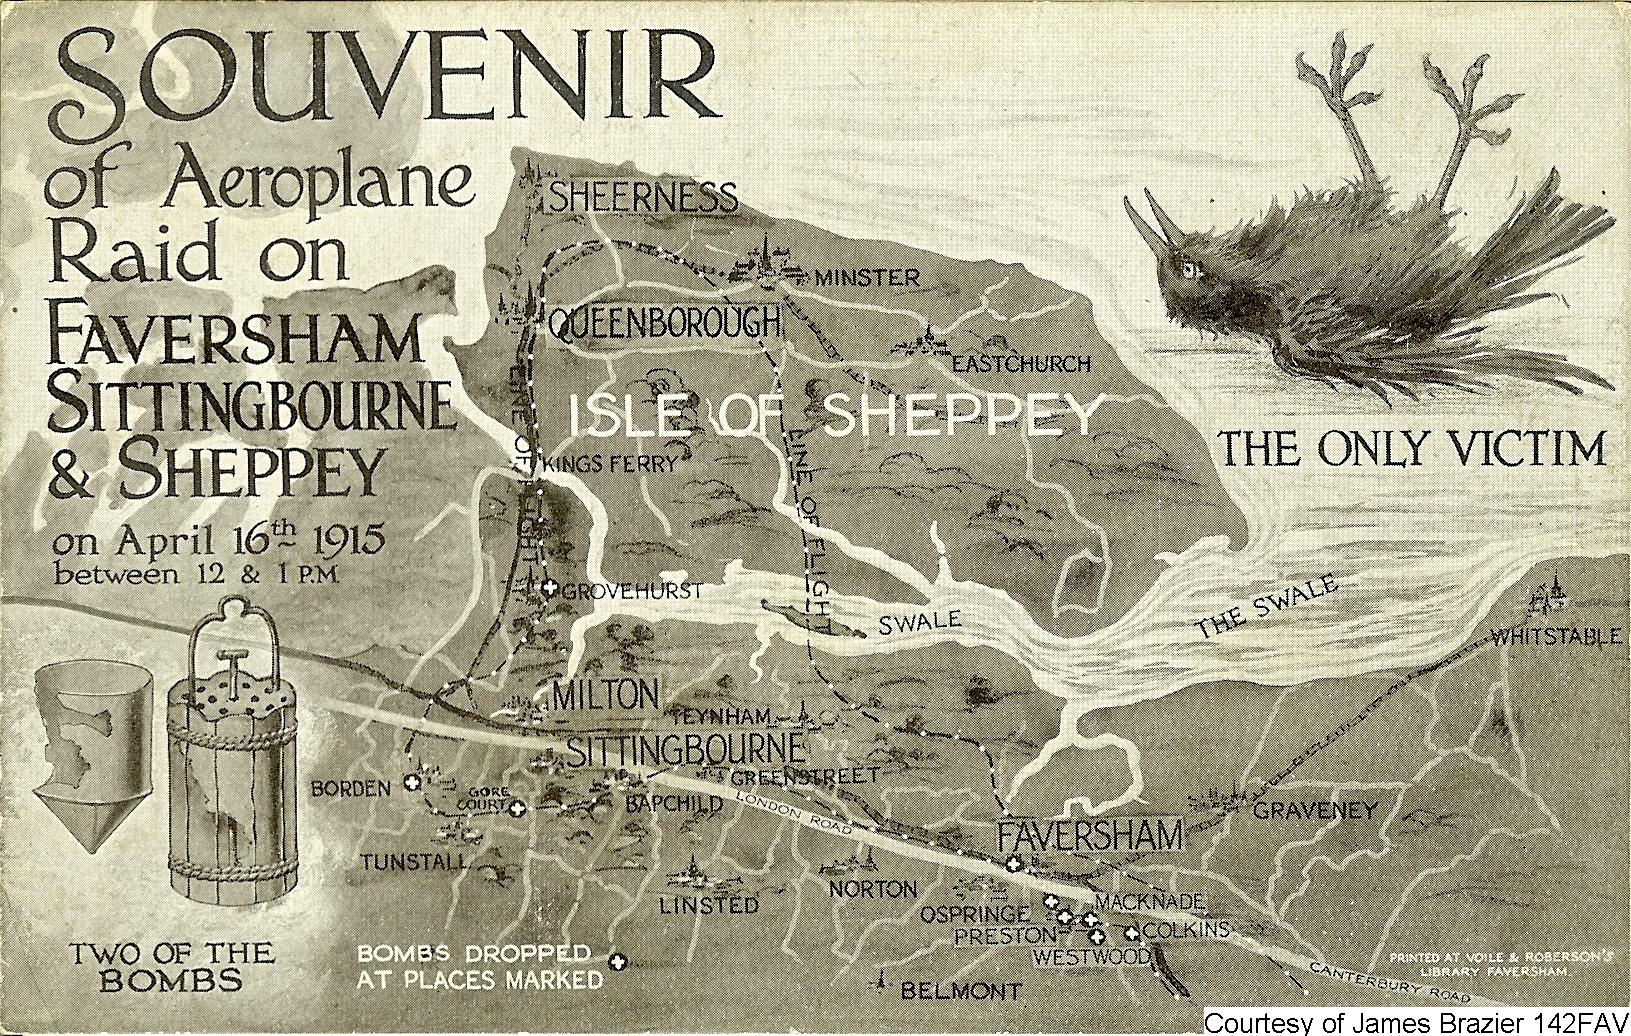 The Faversham And Sheppey Air Raid On The 16th April 1915